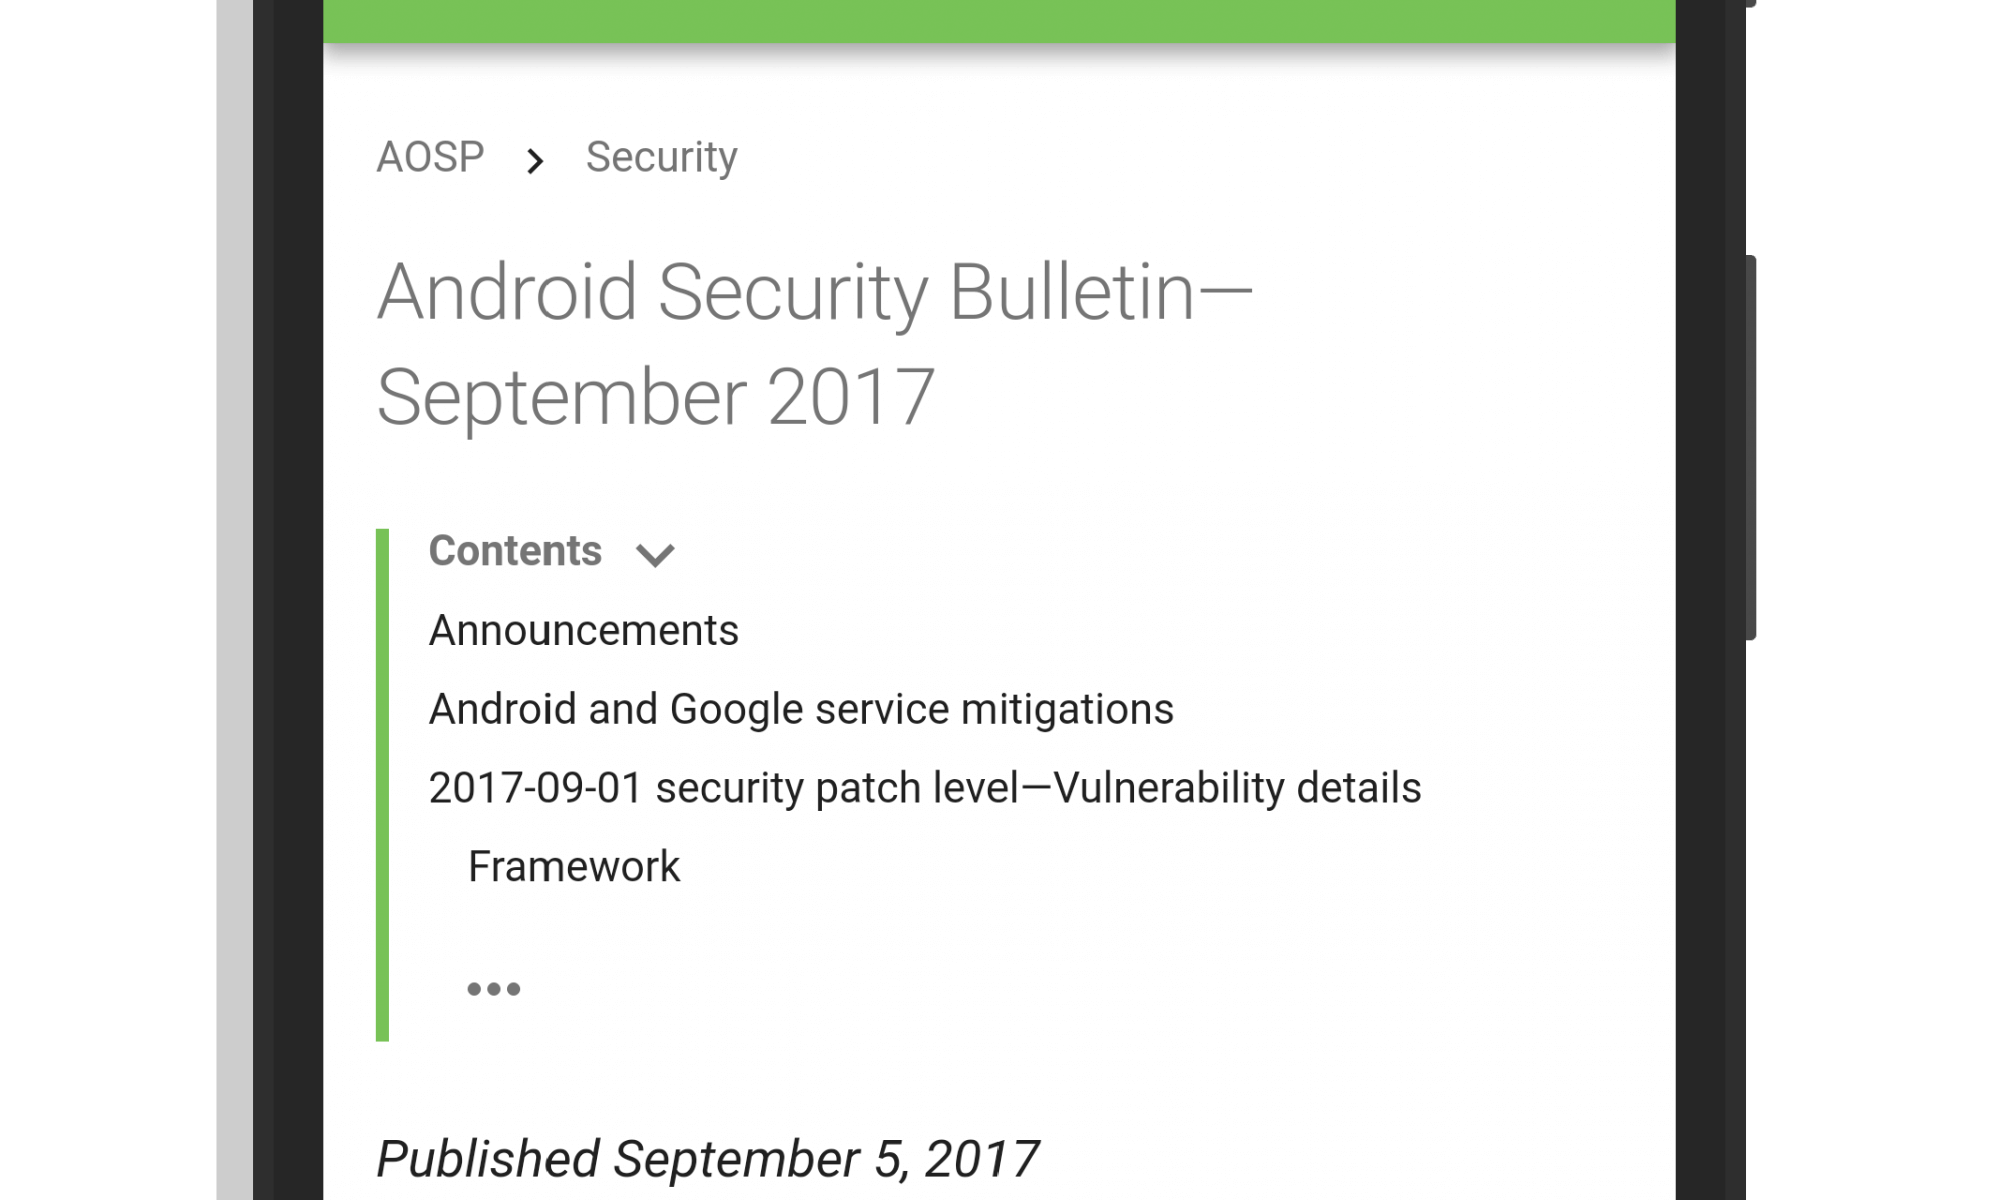 Android Security Update - September 2017